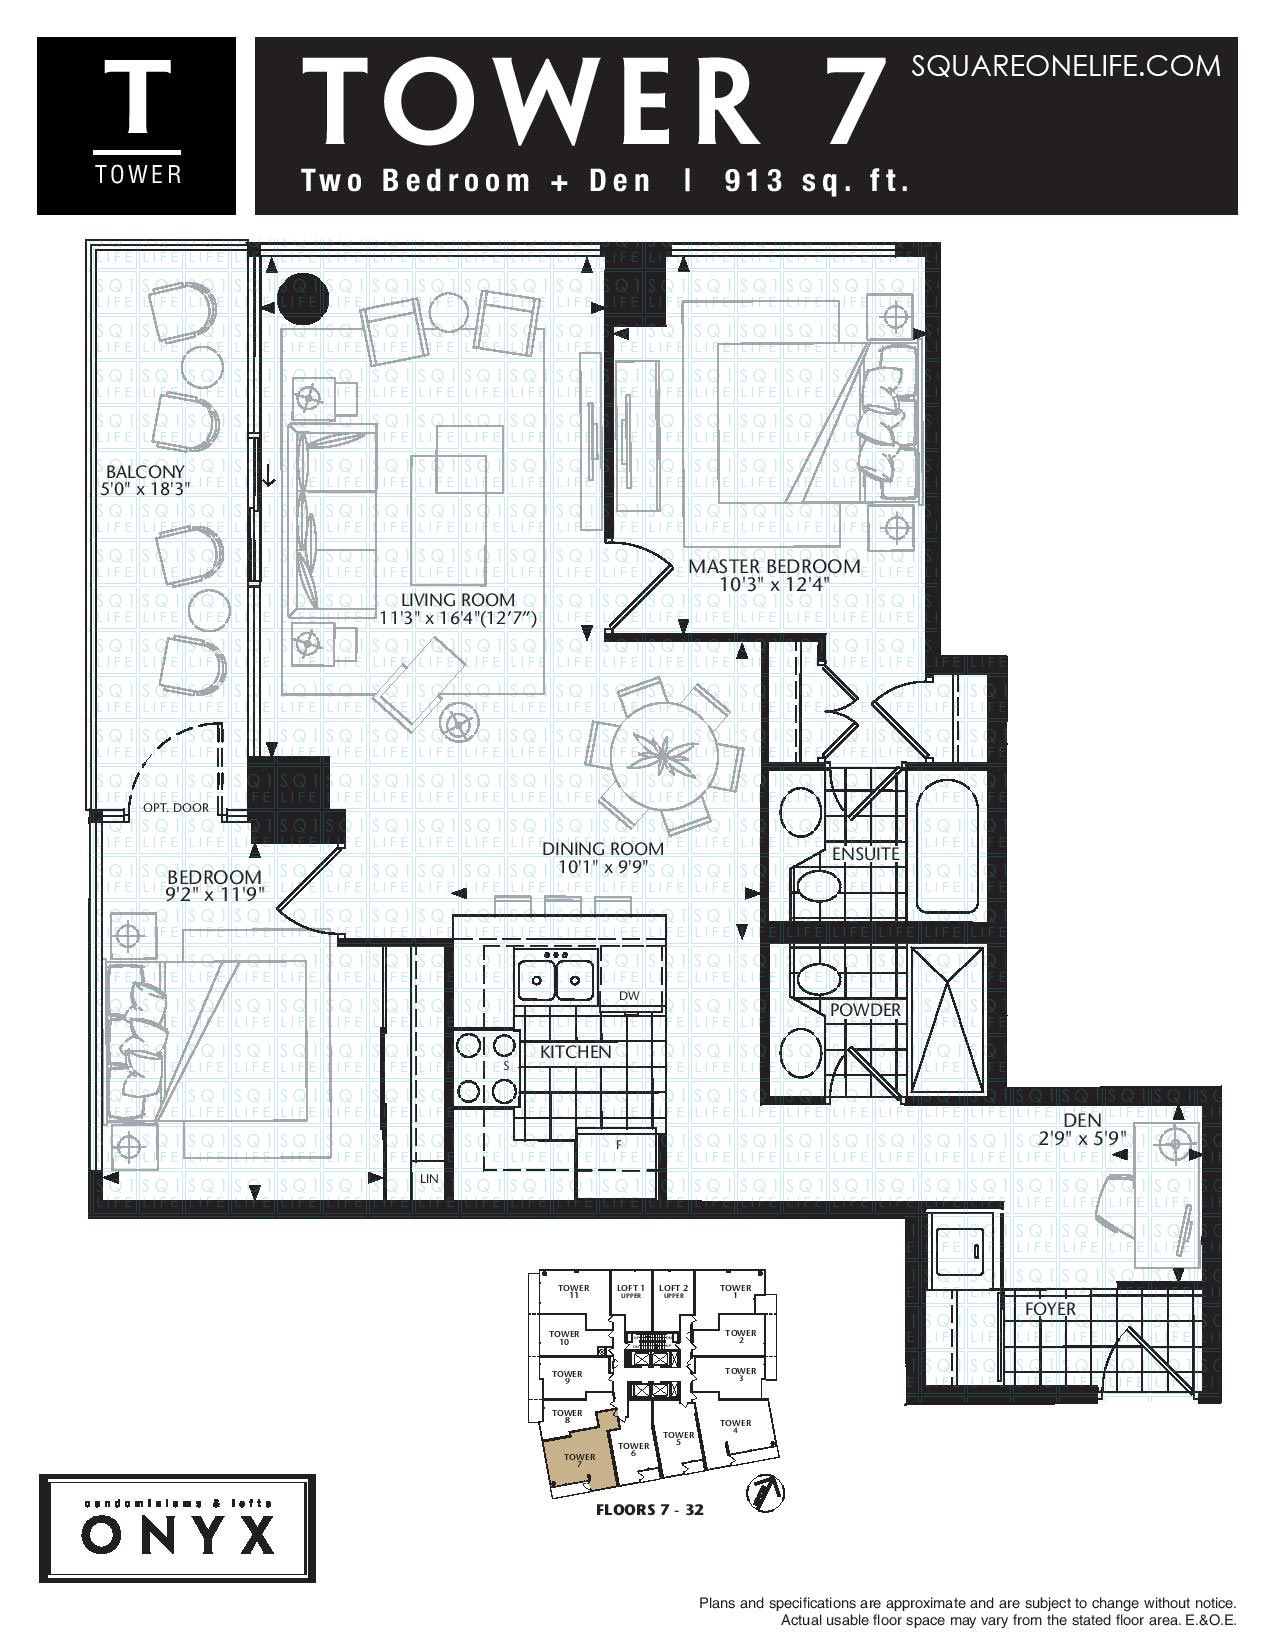 223-Webb-Dr-Onyx-Condo-Floorplan-Tower-7-2-Bed-1-Den-2-Bath onyx condo Onyx Condo 223 Webb Dr Onyx Condo Floorplan Tower 7 2 Bed 1 Den 2 Bath